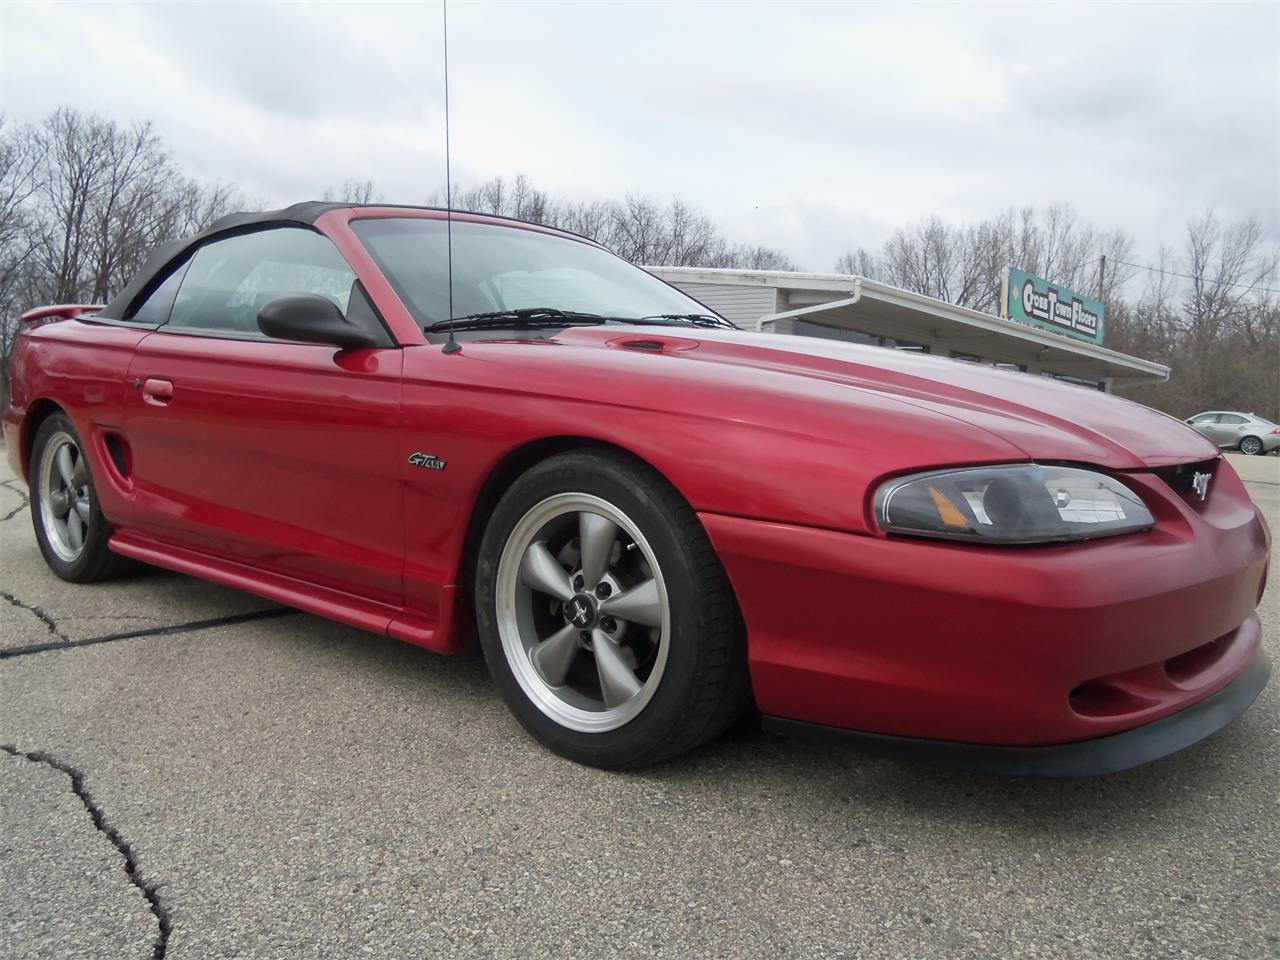 Large picture of 97 mustang gt n4ou